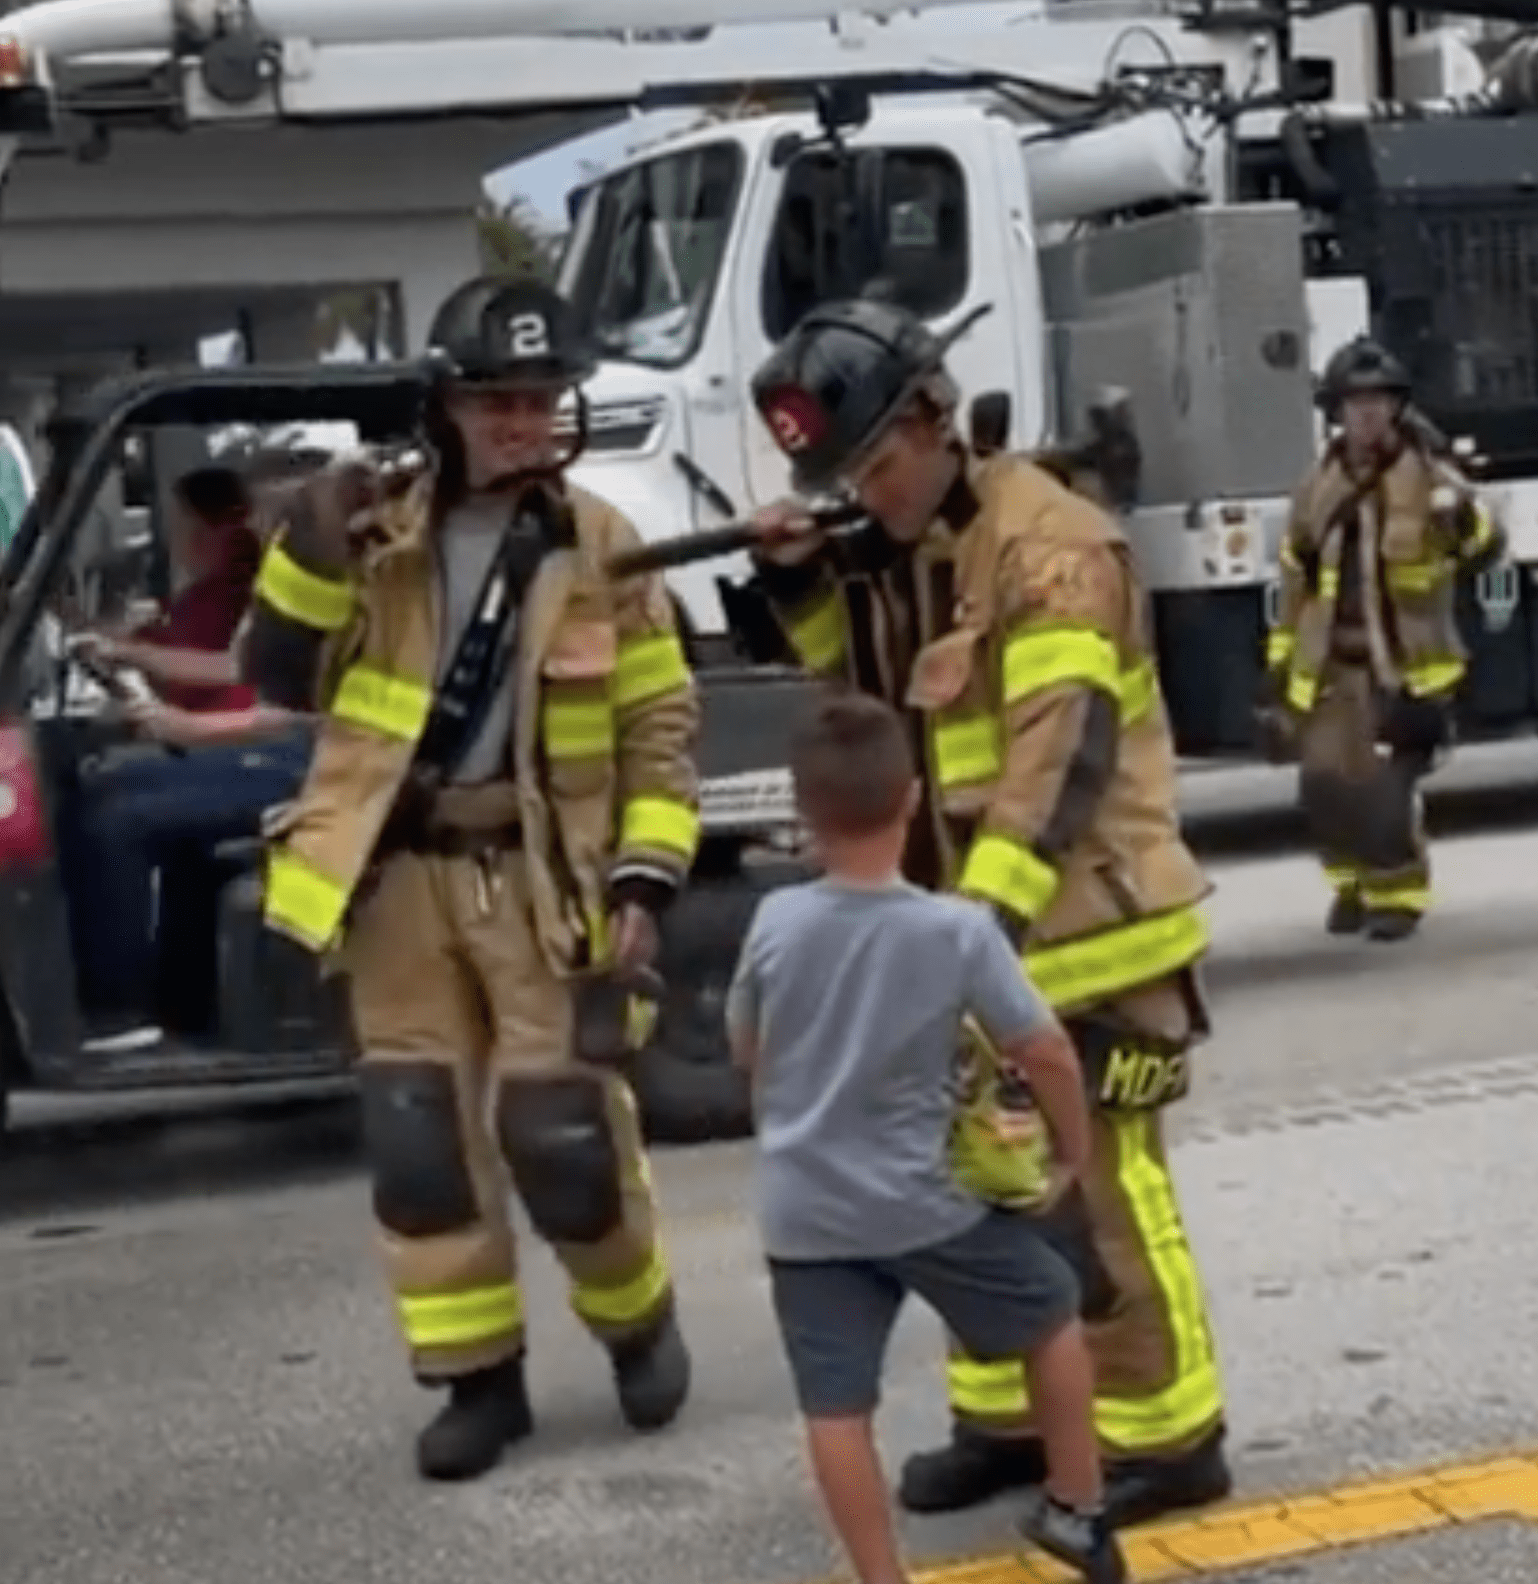 Boy distributes candy and sodas to firemen | Photo: Reddit/Thund3rbolt